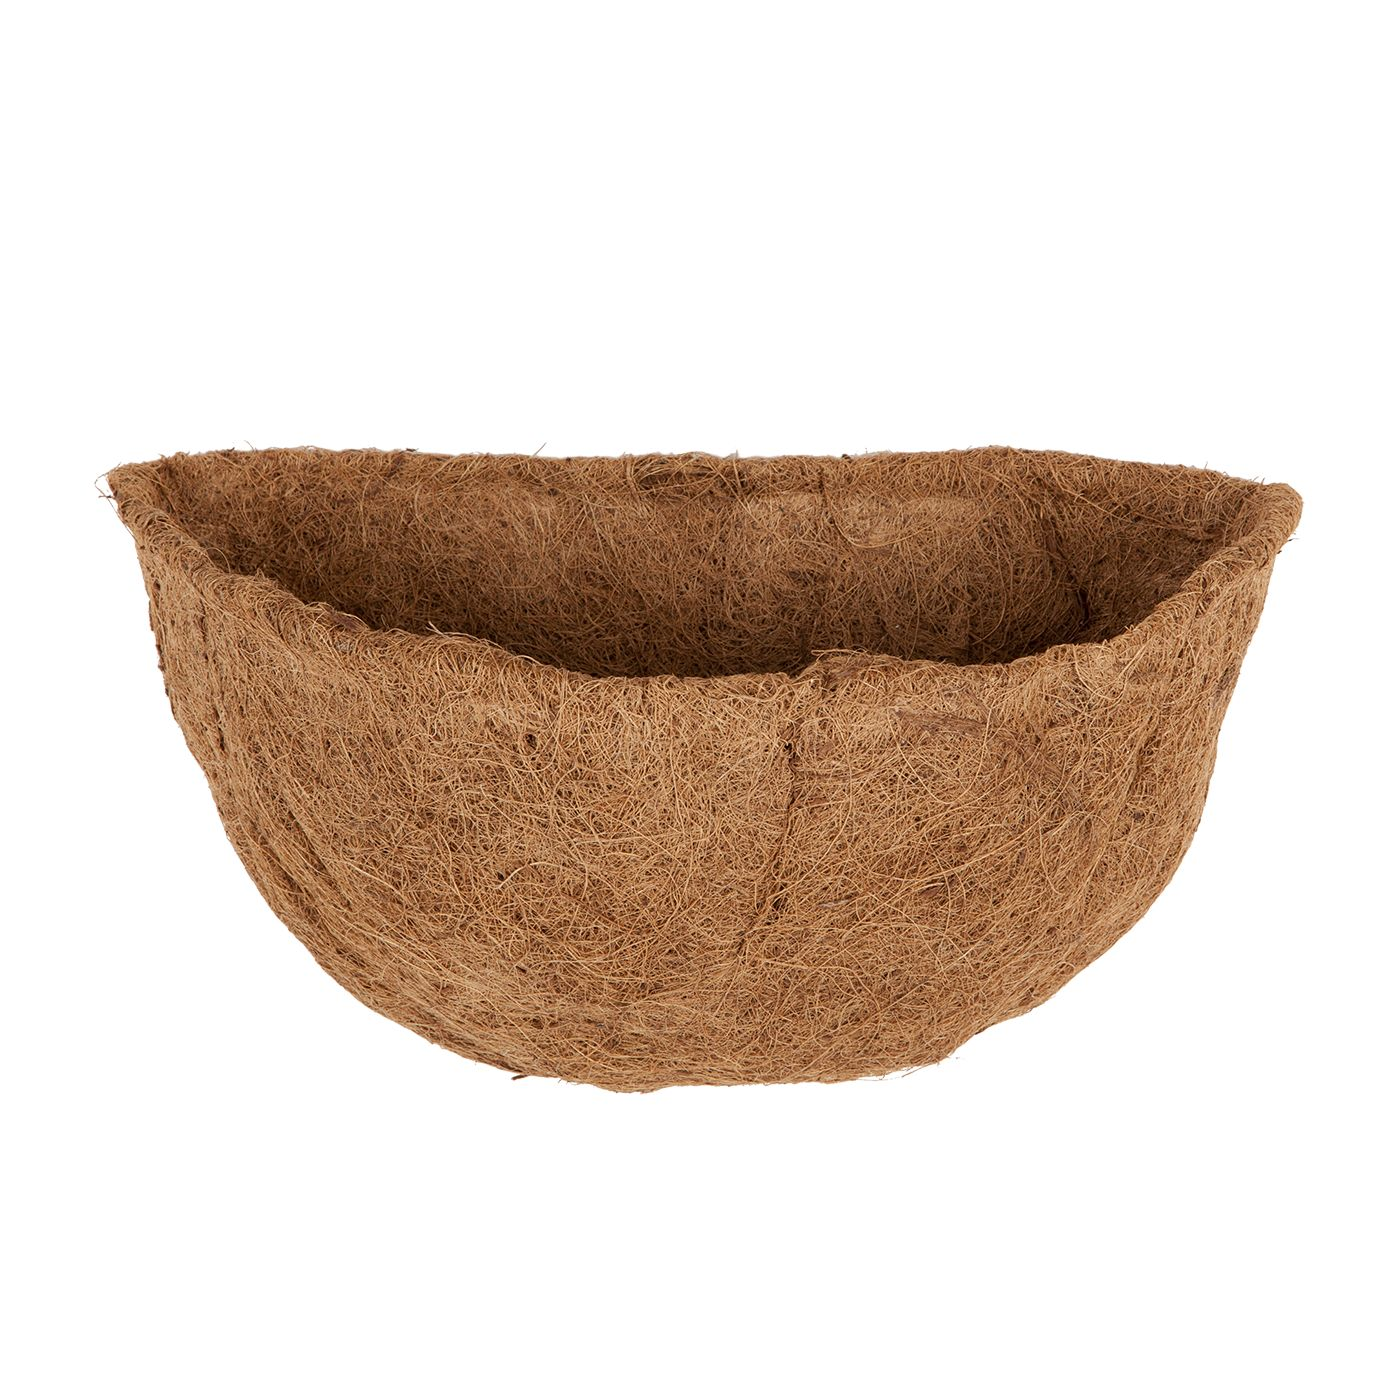 Natural Coconut Coir Basket Liners For Half Round Wall Planters